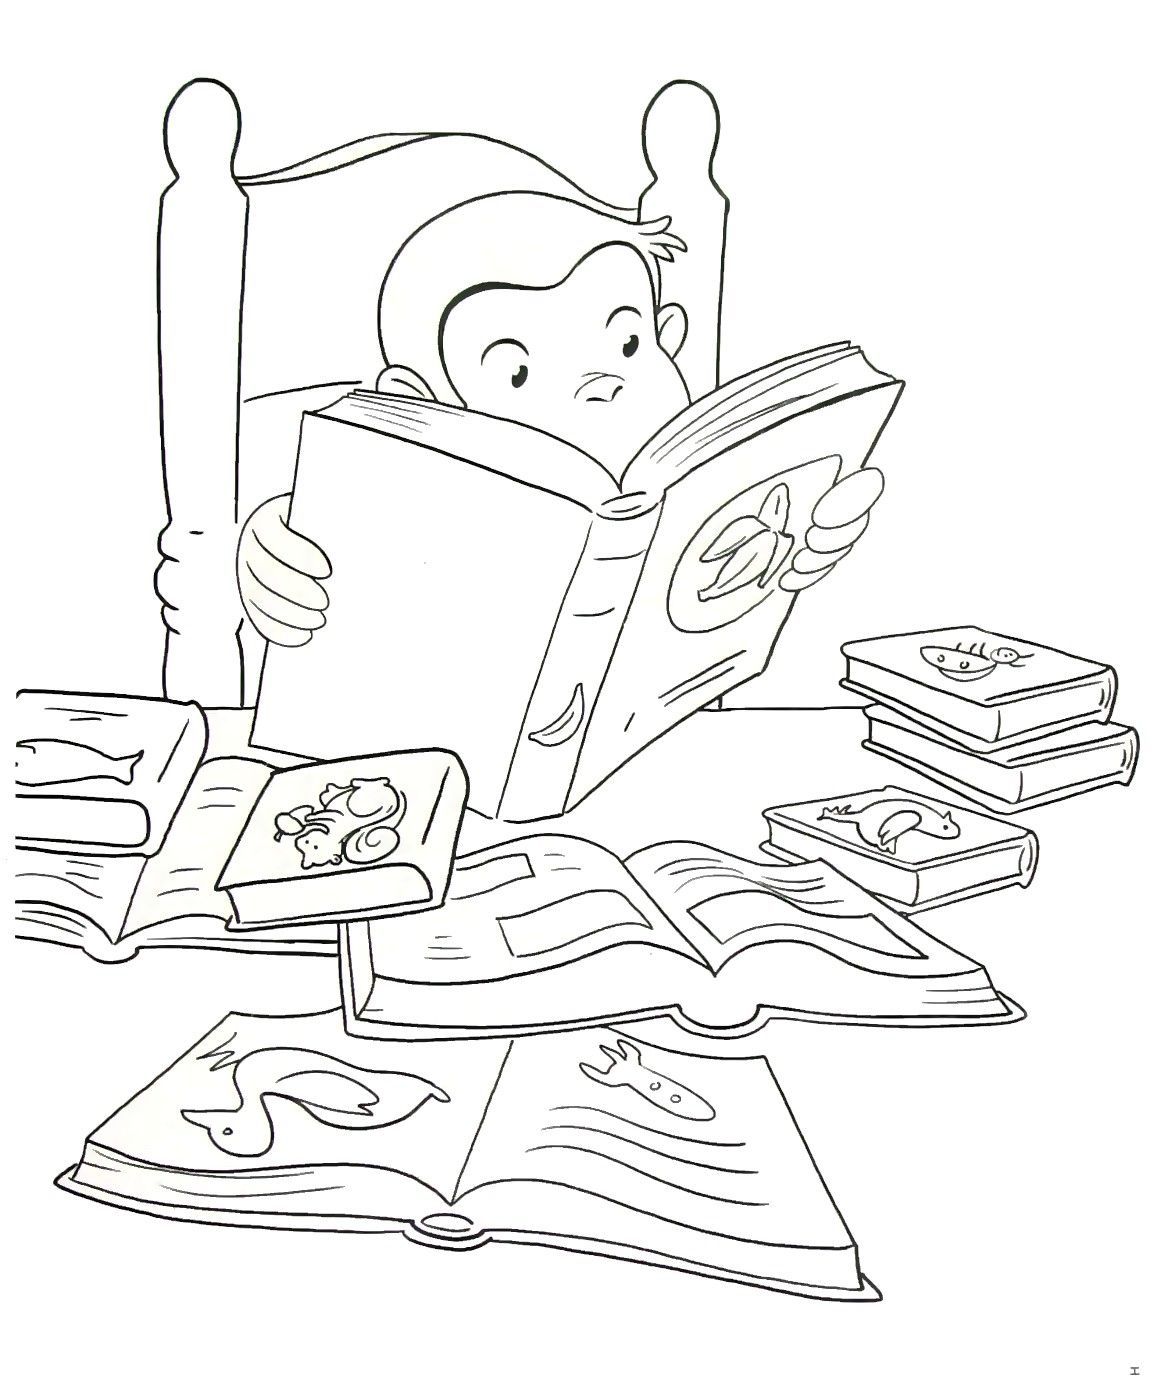 free coloring pages download curious george reading a book coloring book page printable curious of